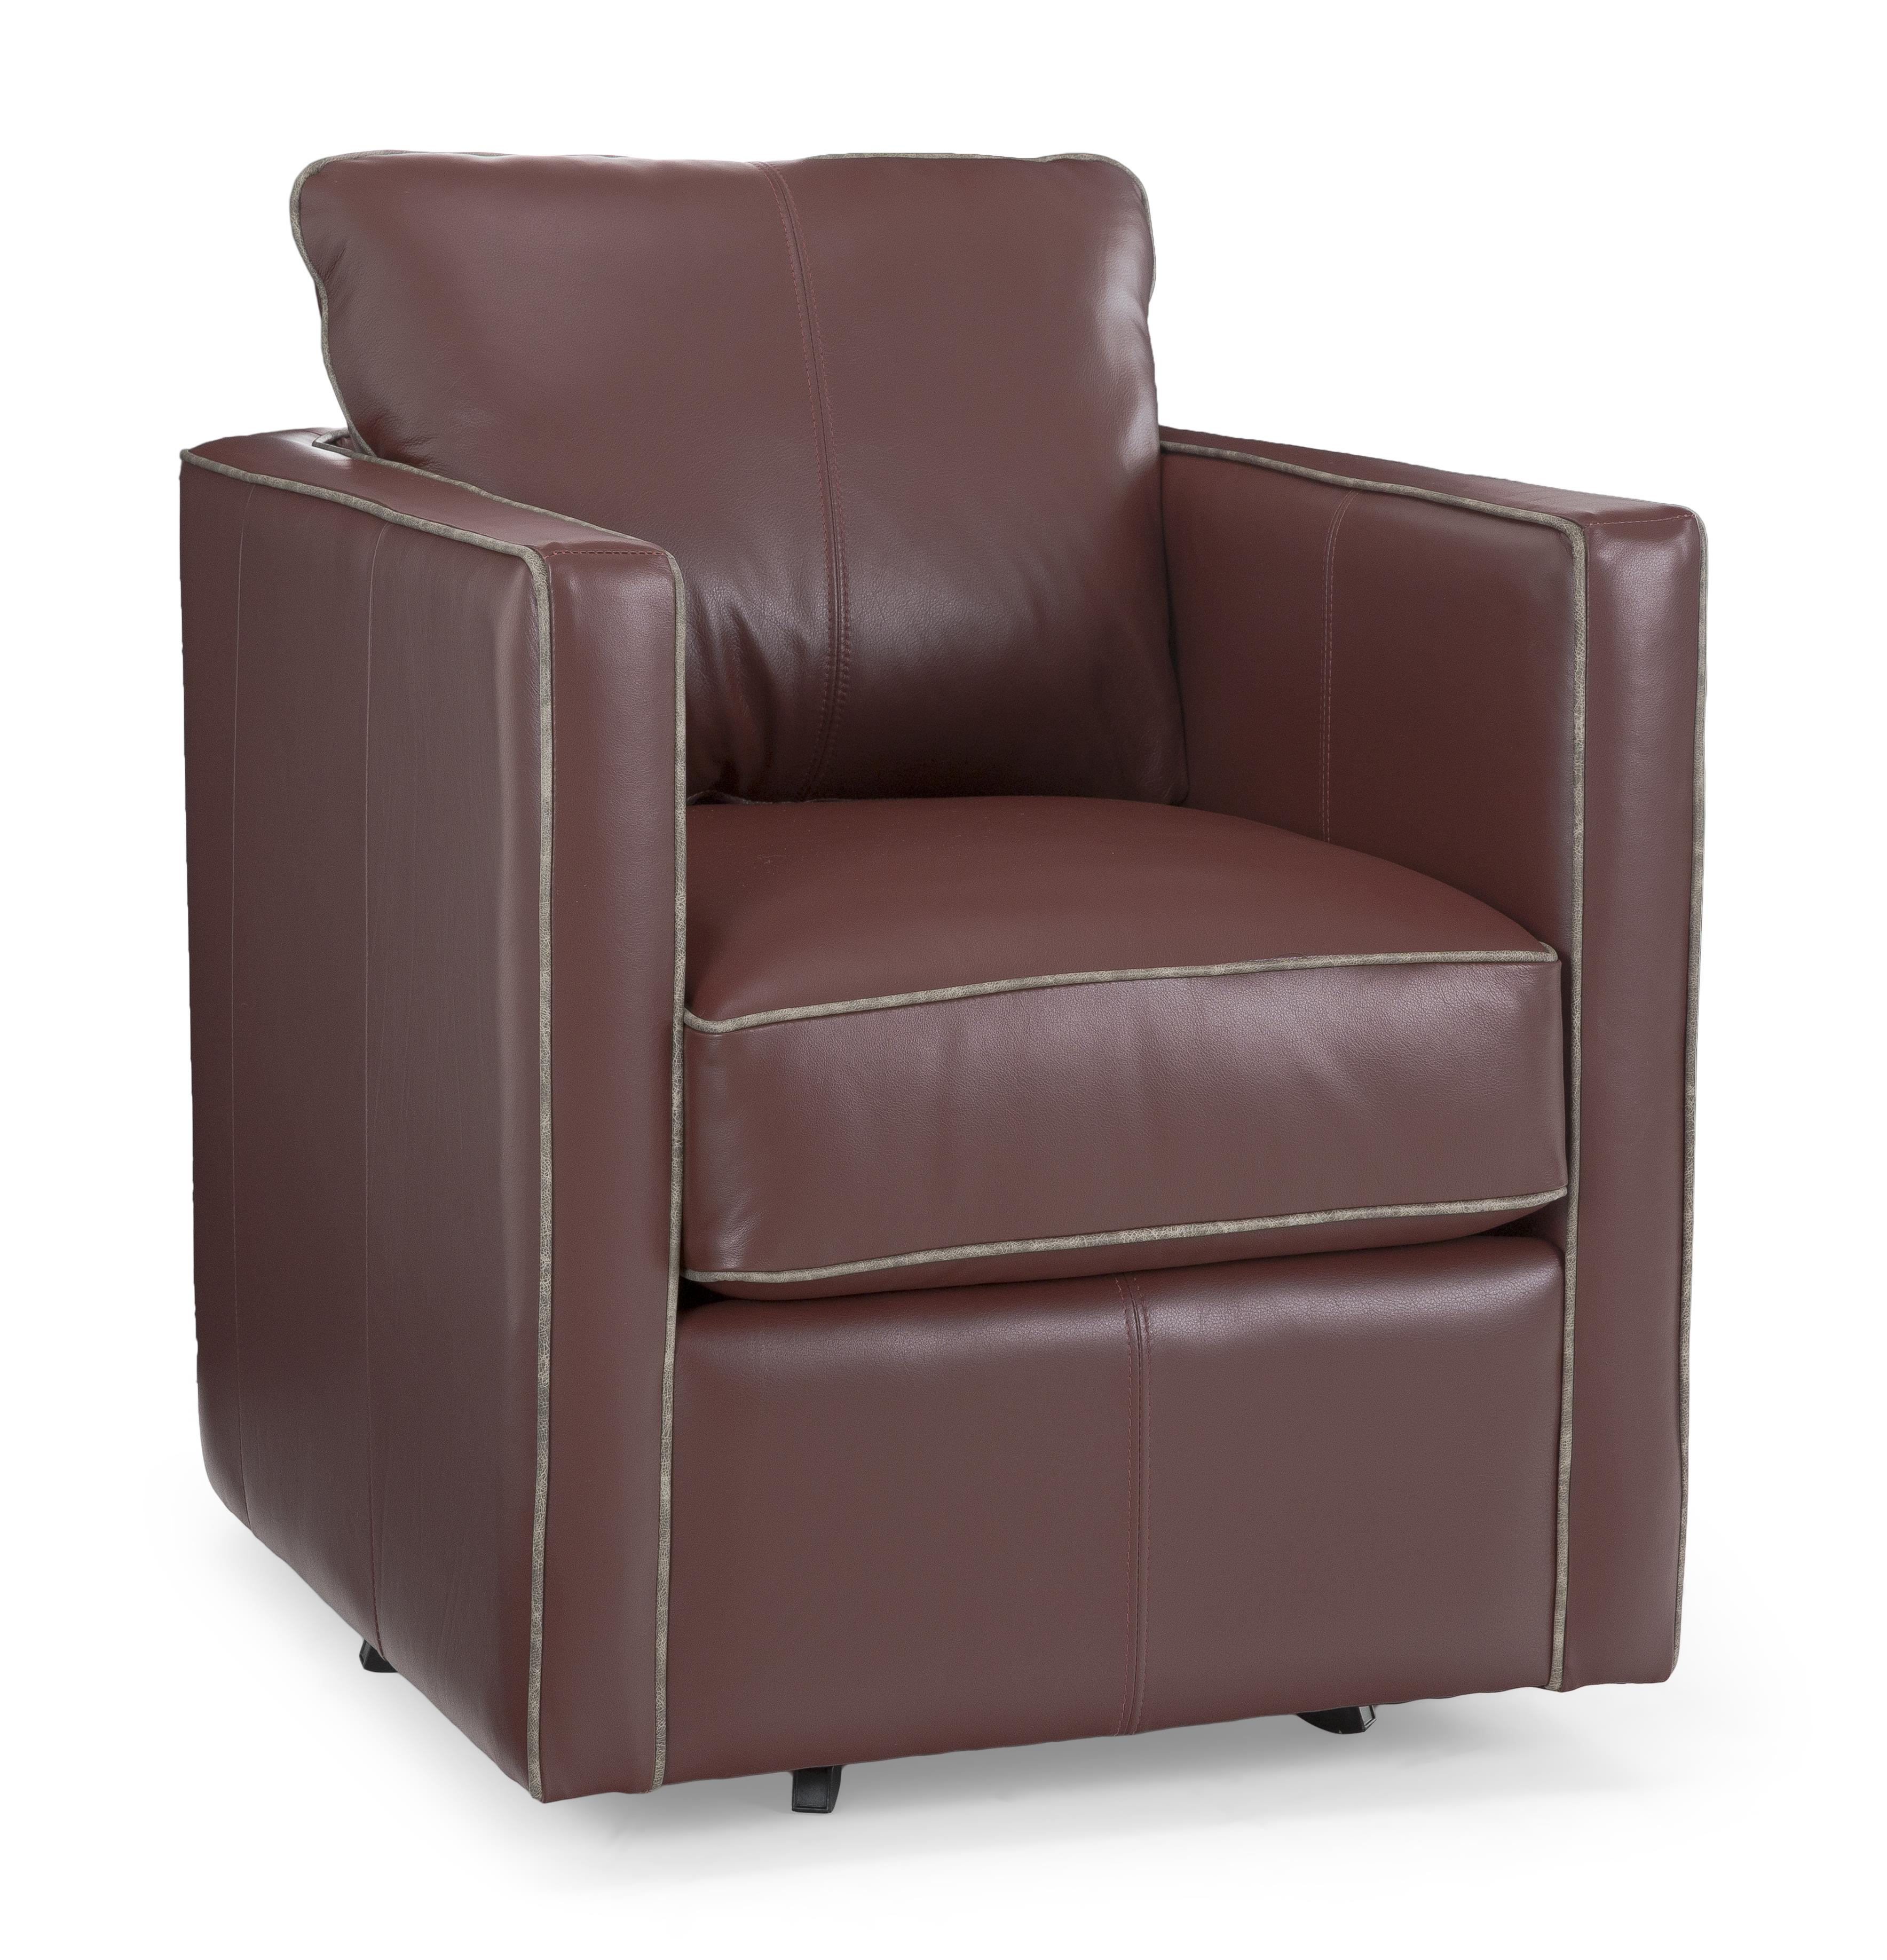 Decor-Rest 3050 Swivel Chair - Item Number: 3050-CampaniaBurgundy